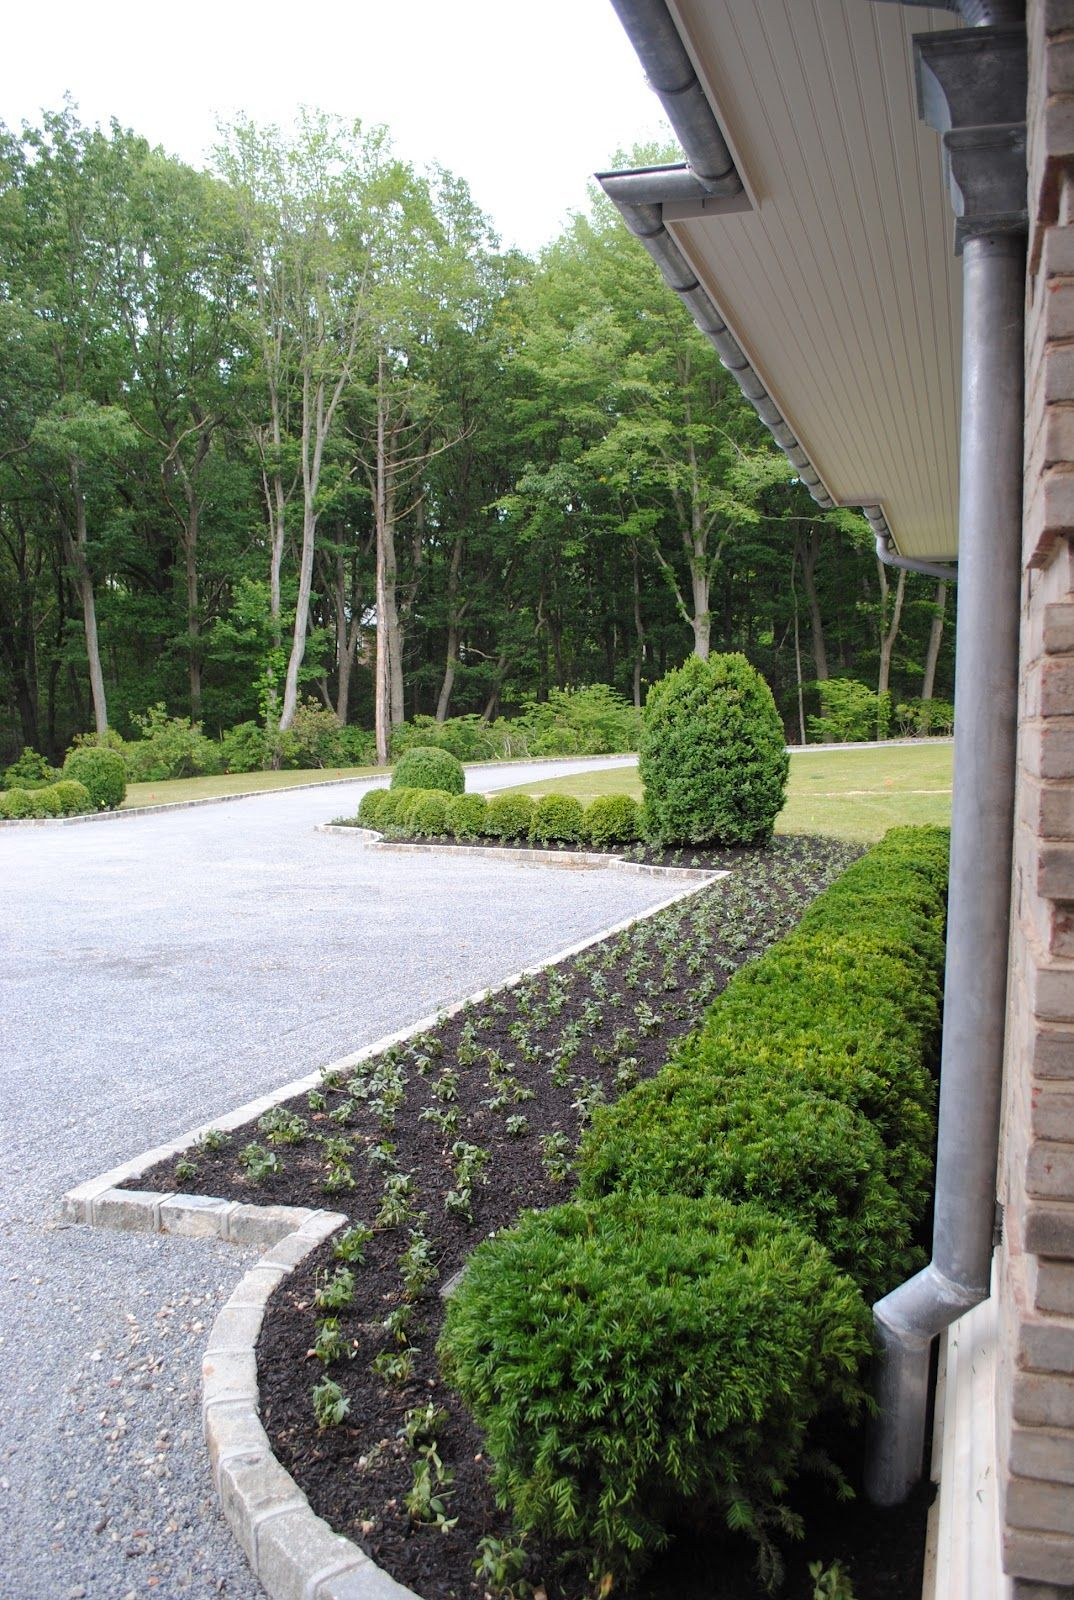 17 Shocking U Shaped Driveway Landscaping That Can Inspire You